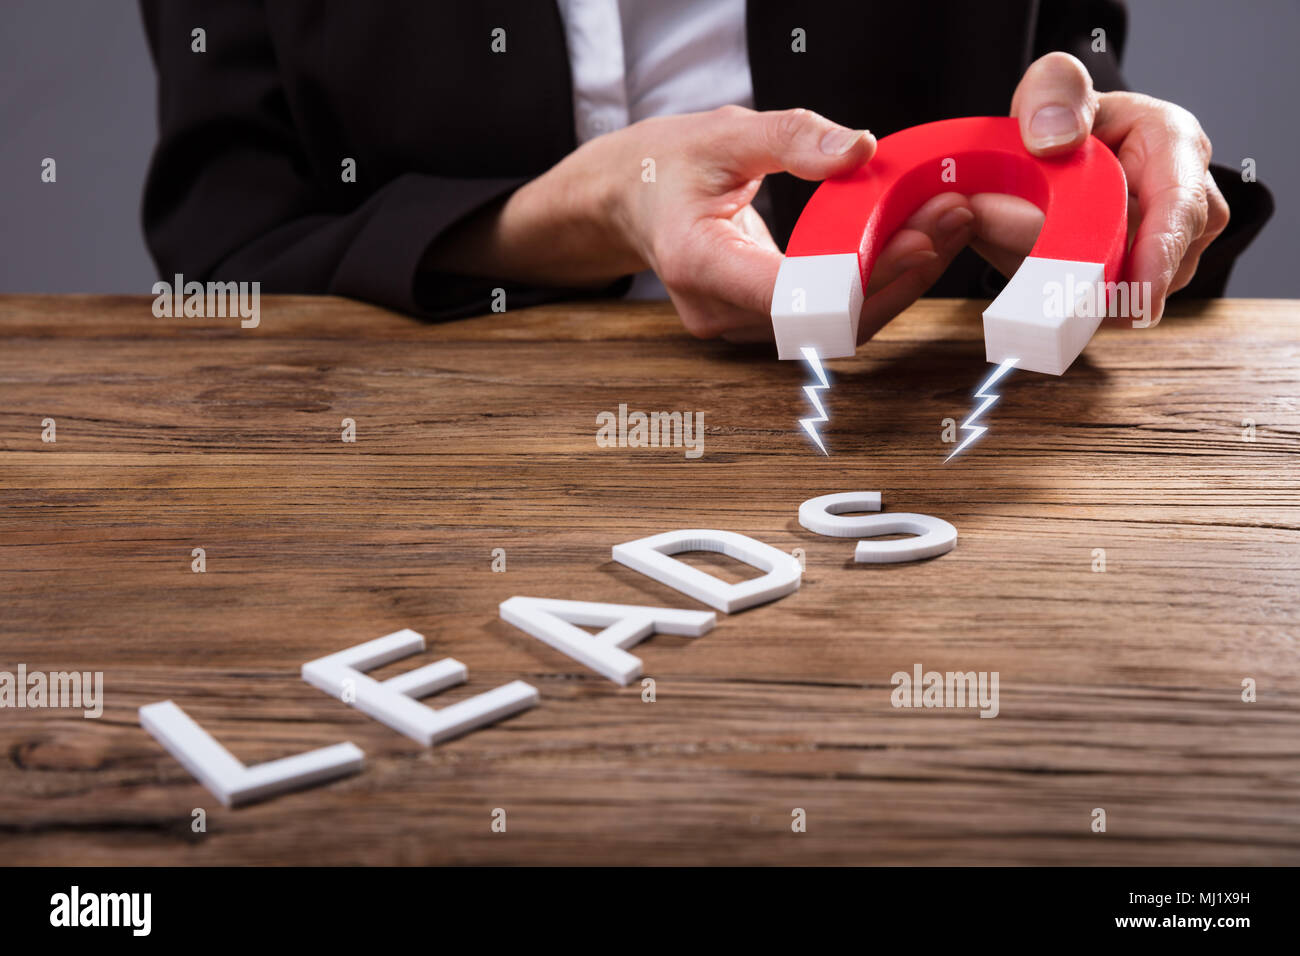 Businessperson Attracting White Lead Text With Horseshoe Magnet Over Wooden Desk Stock Photo